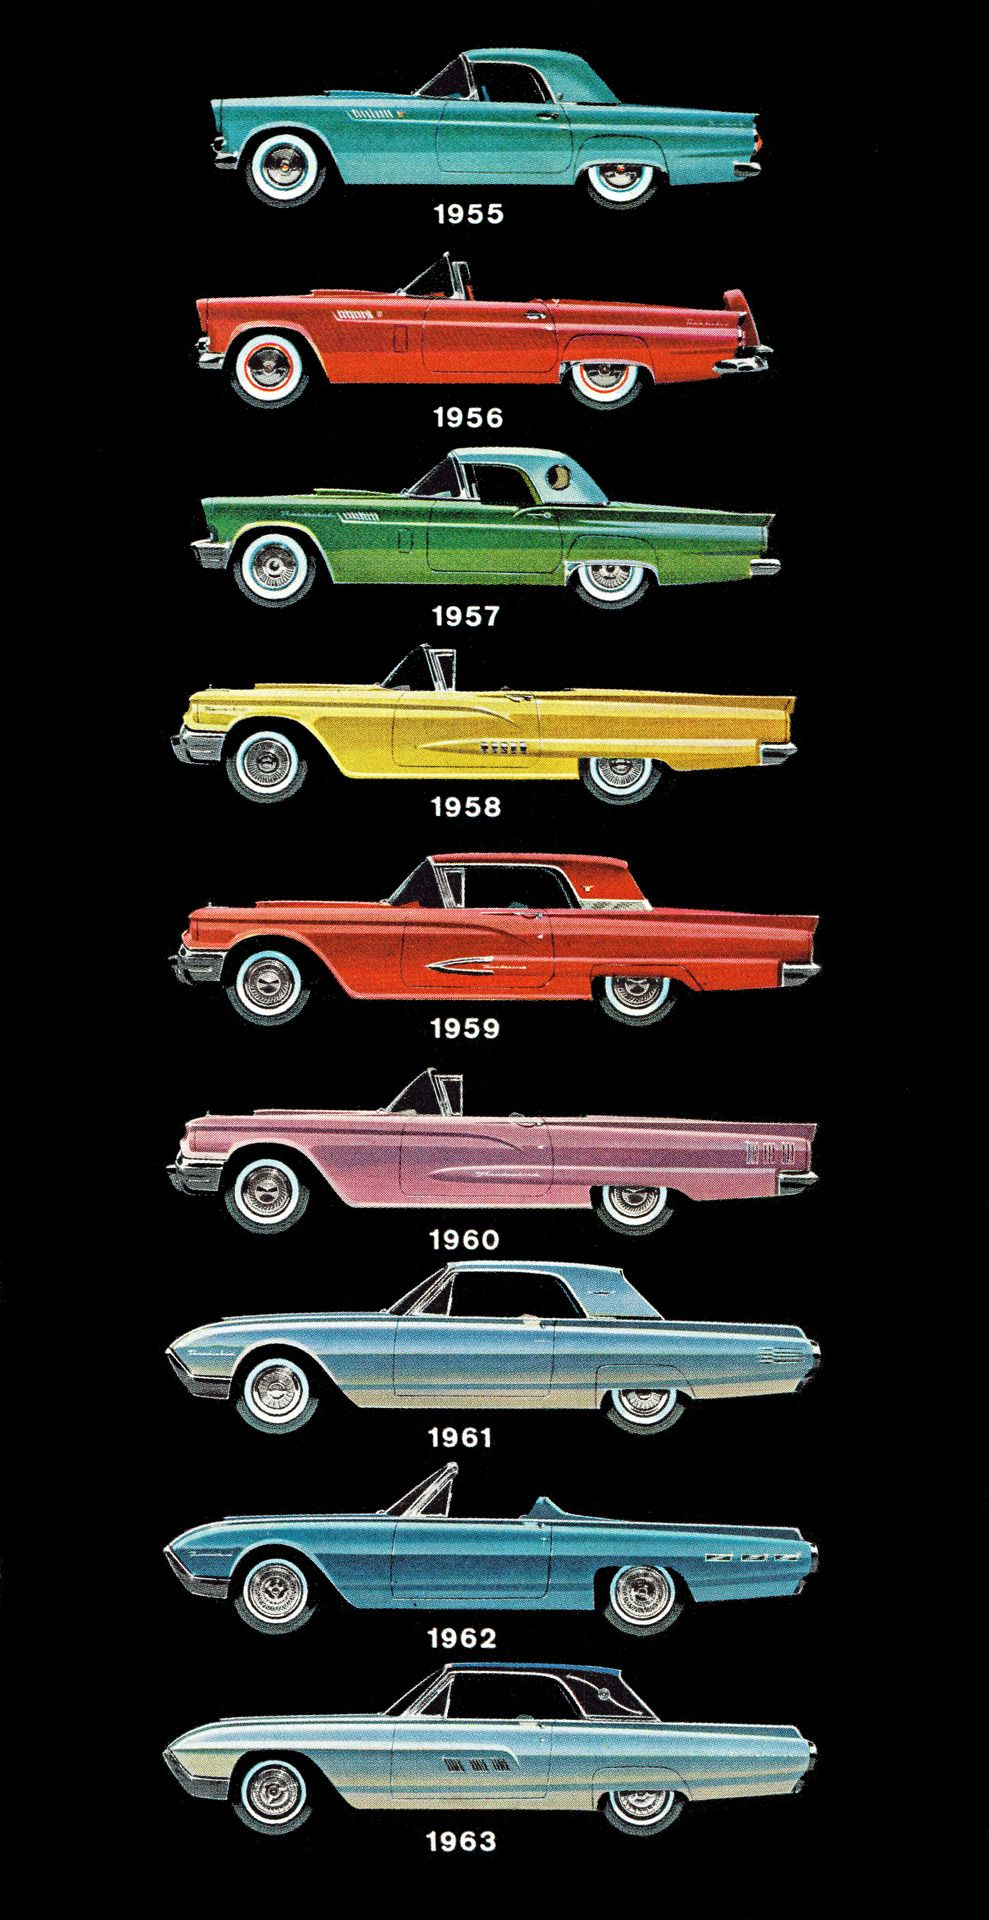 Energetic Original Vintage 1963 Chevy Ii Sales Brochure Chevrolet Advertising Car Auto Chevrolet